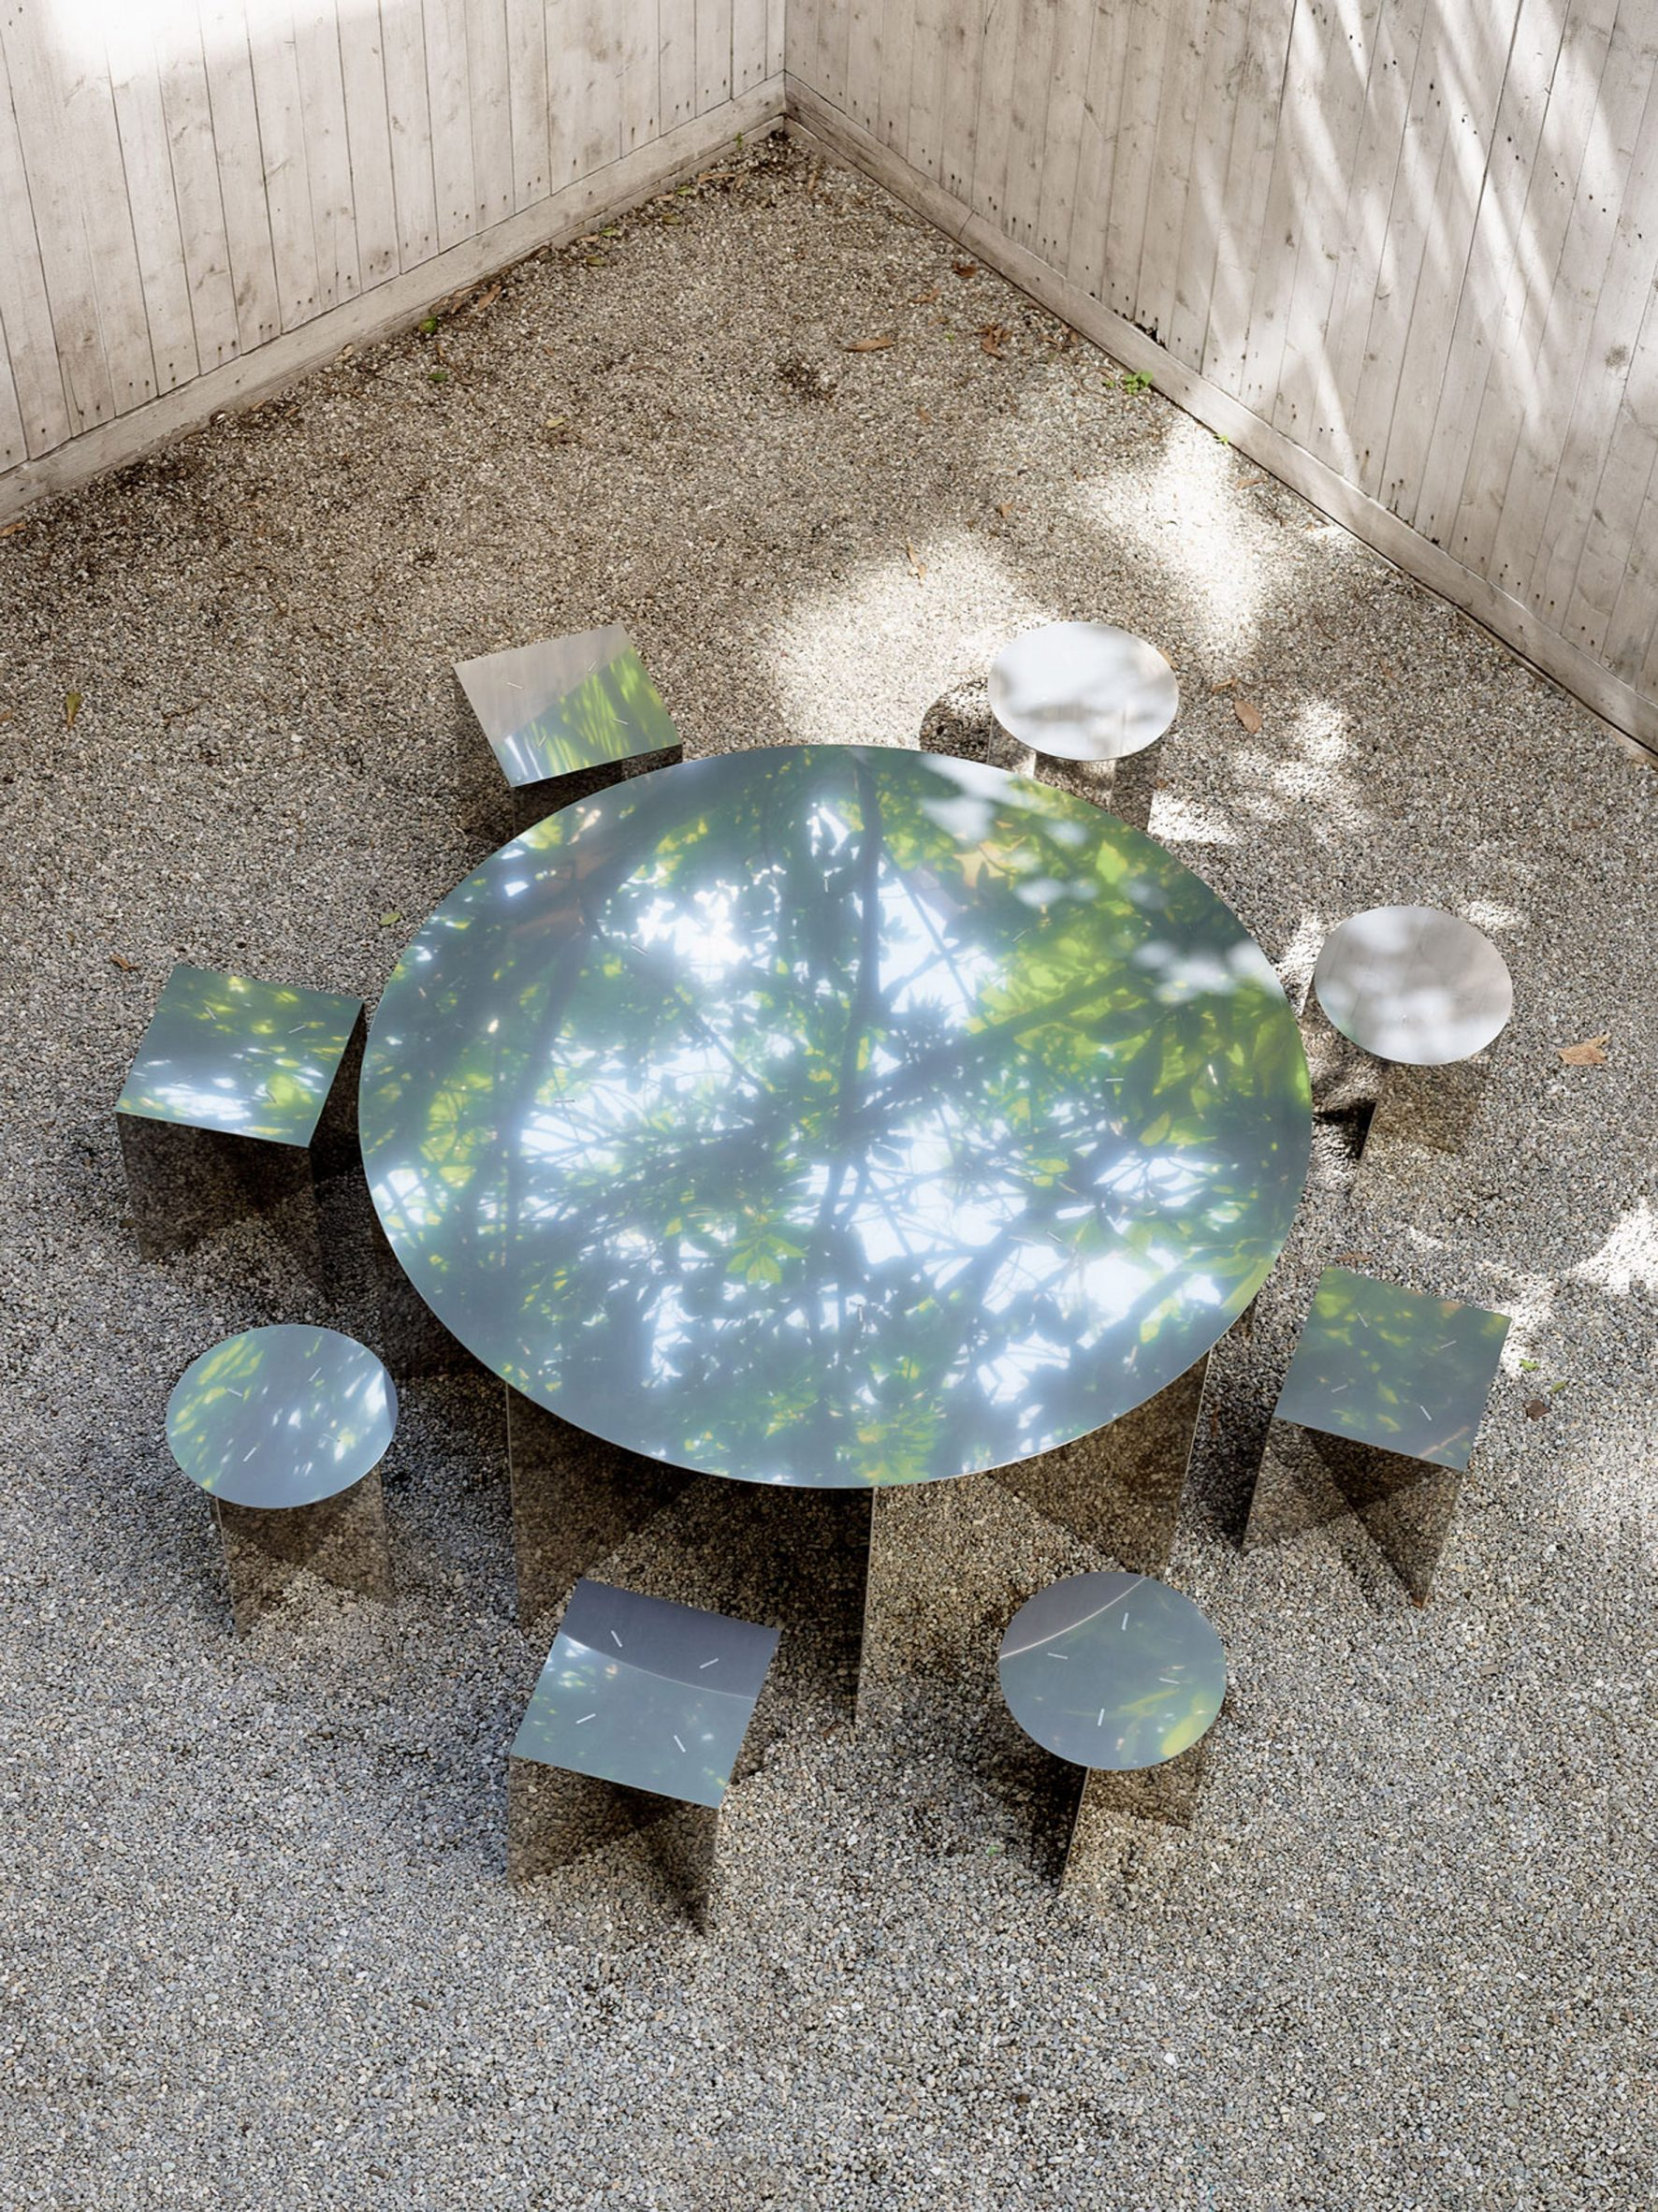 A metal table and chair reflects the trees and shrubbery